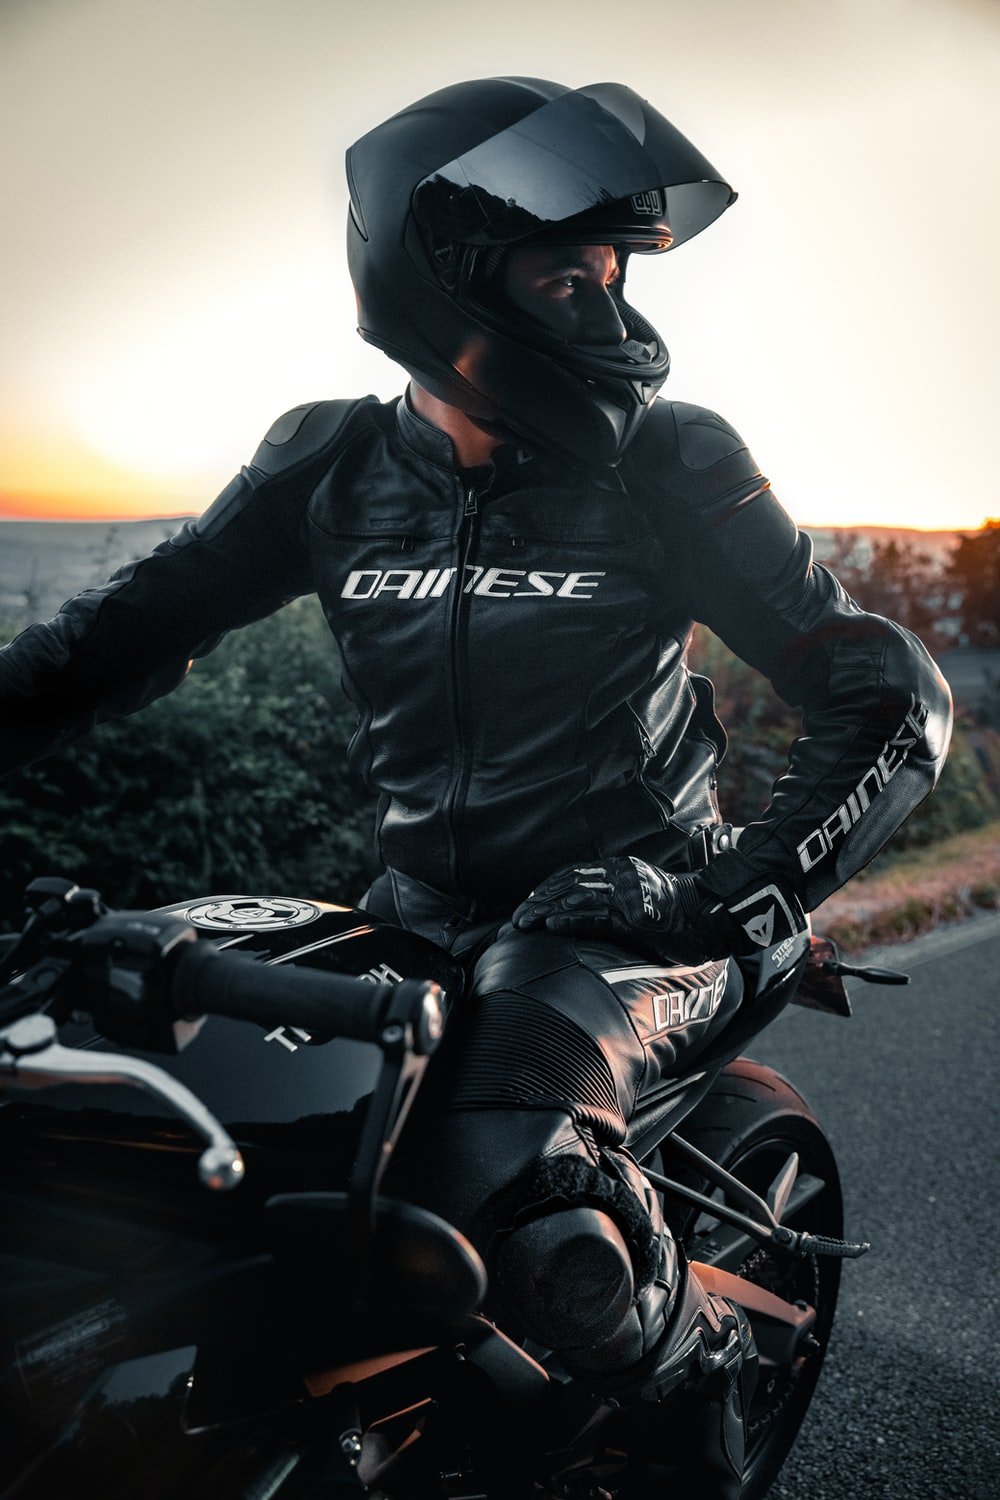 500 Biker Pictures Hq Download Free Images Stock Photos On Unsplash